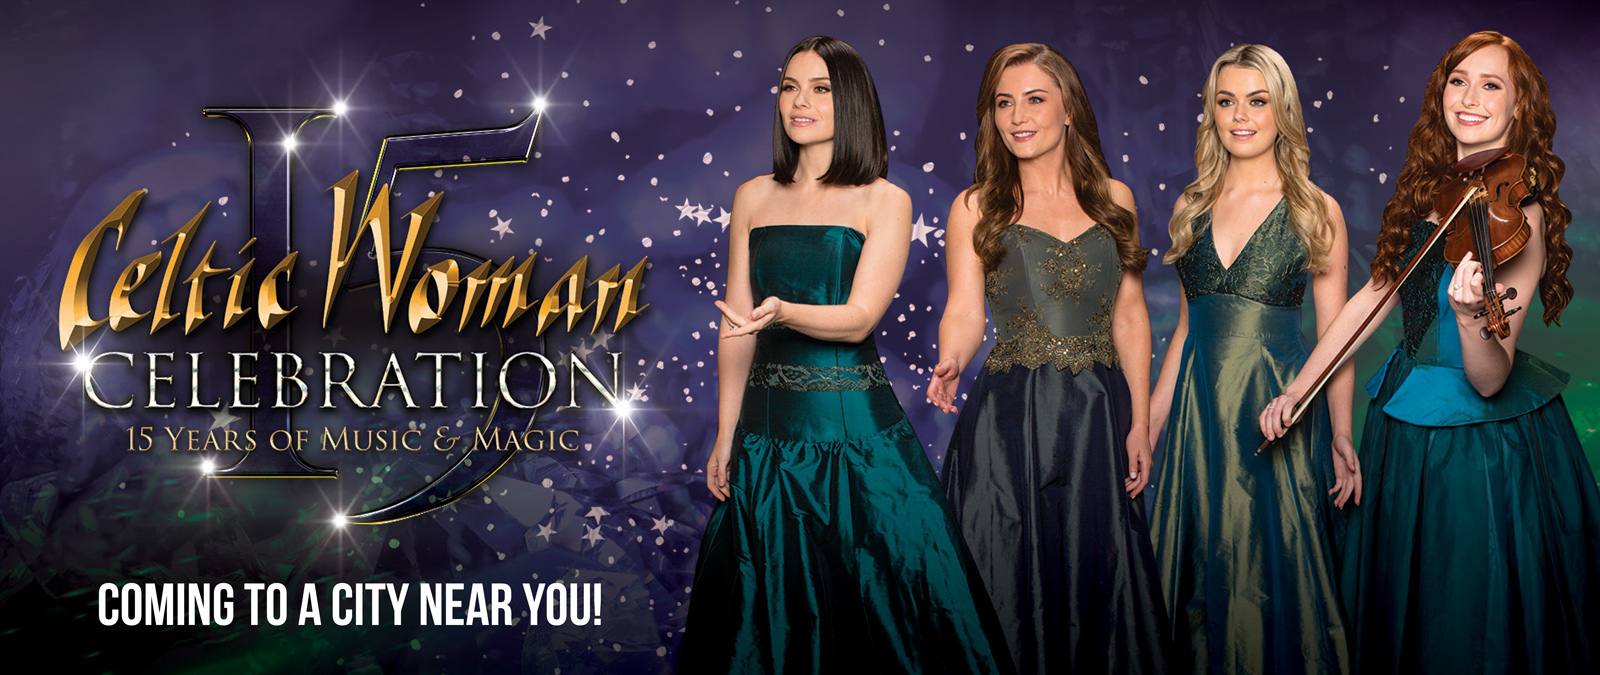 Celtic Woman Christmas.Celtic Woman